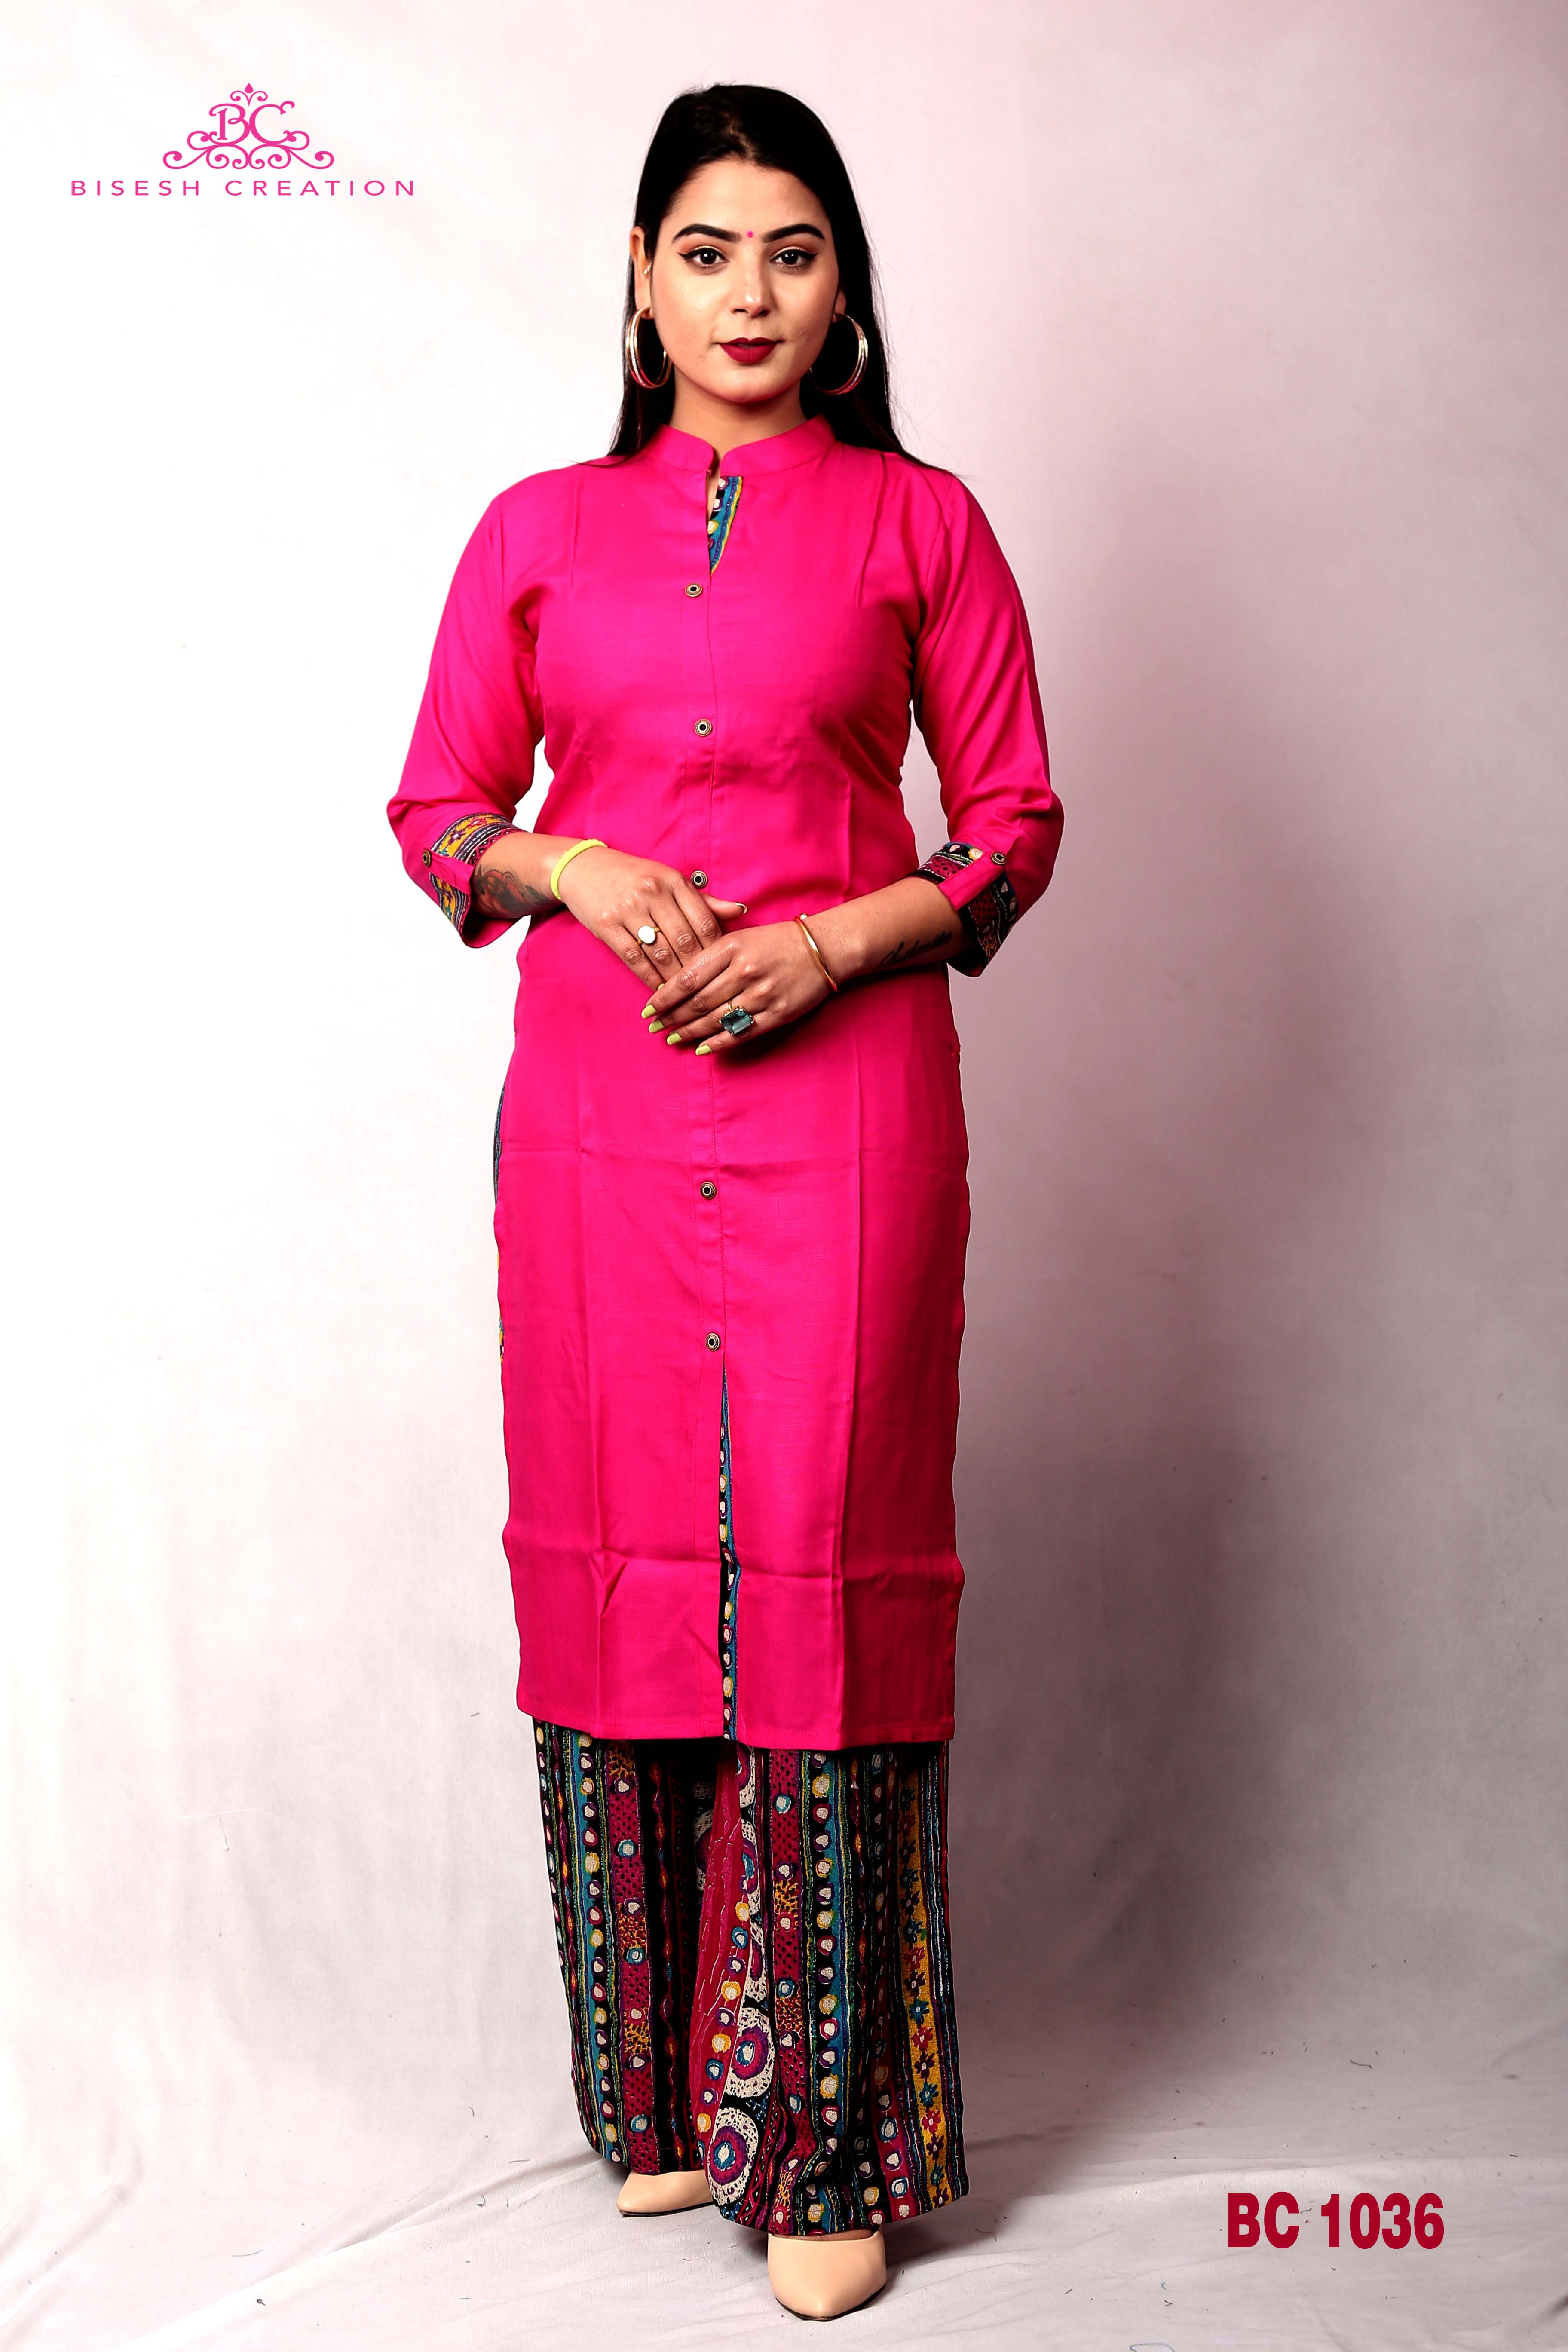 15ee03eea1 Online Shopping in Nepal Buy Fashion Clothes